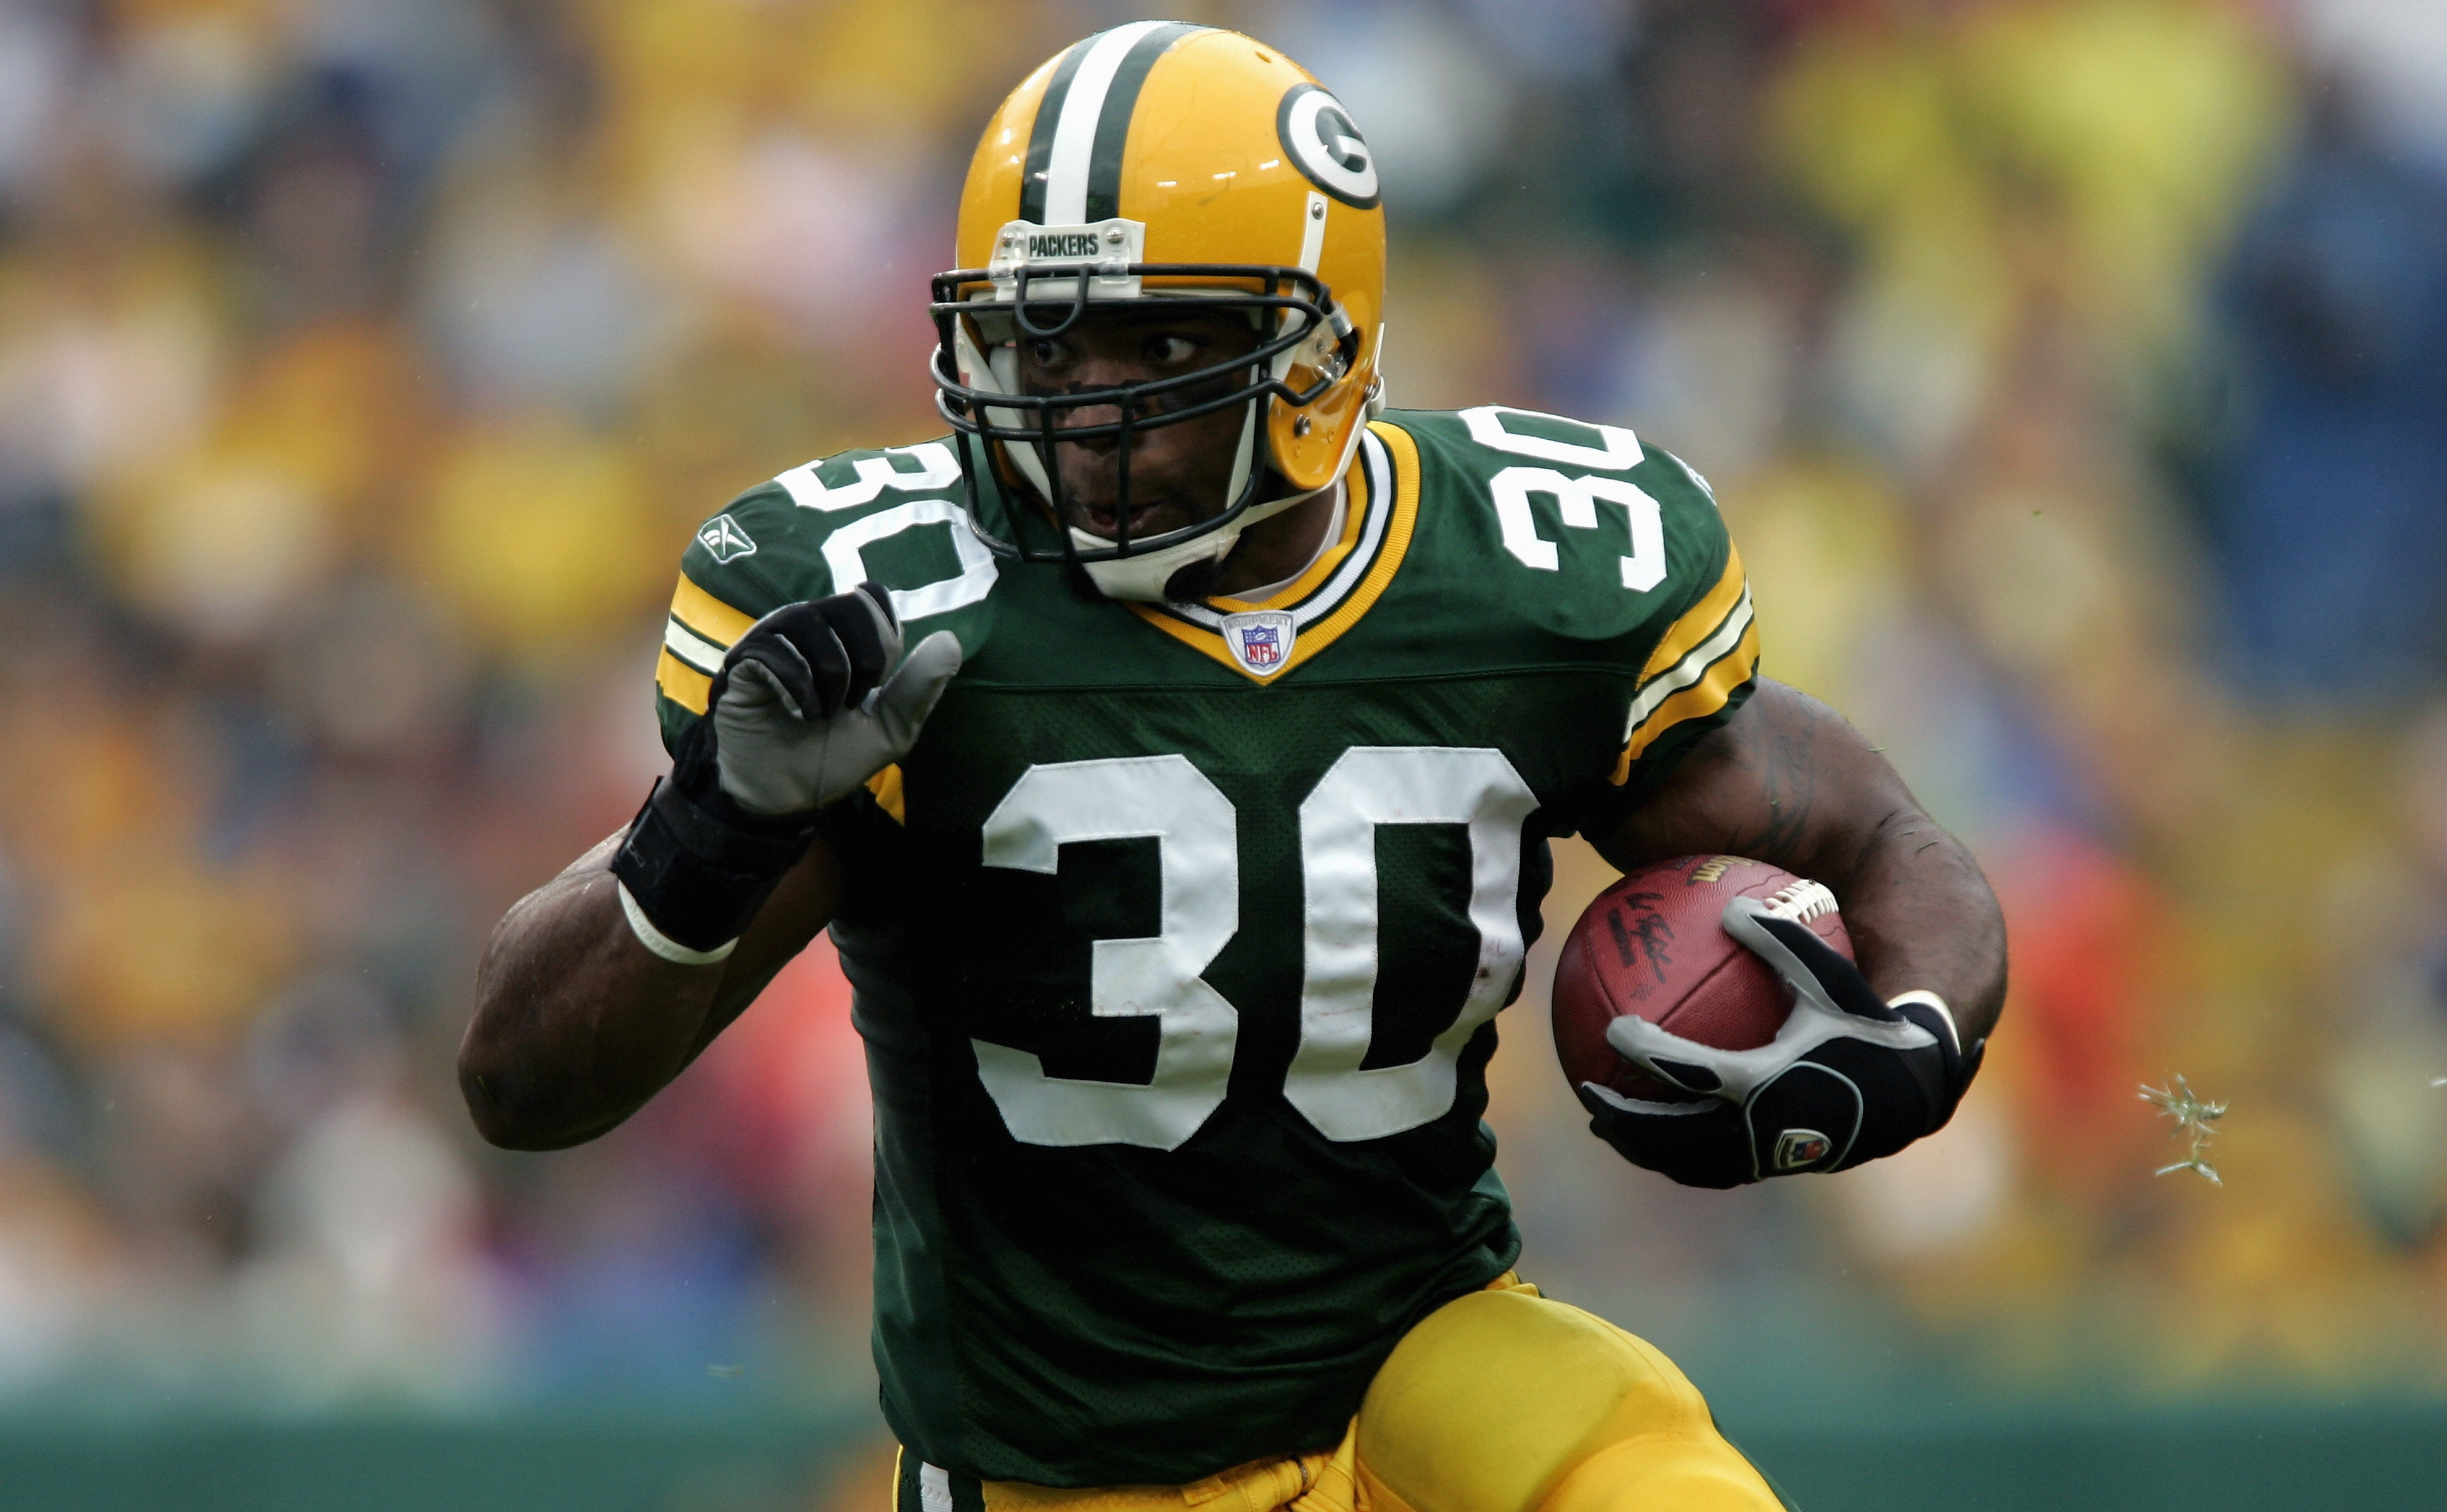 GREEN BAY, WI - SEPTEMBER 25:  Ahman Green #30 of the Green Bay Packers carries the ball during the game with the Tampa Bay Buccaneers on September 25, 2005 at Lambeau Field in Green Bay, Wisconsin.  The Bucs won 17-16.  (Photo by Brian Bahr/Getty Images)